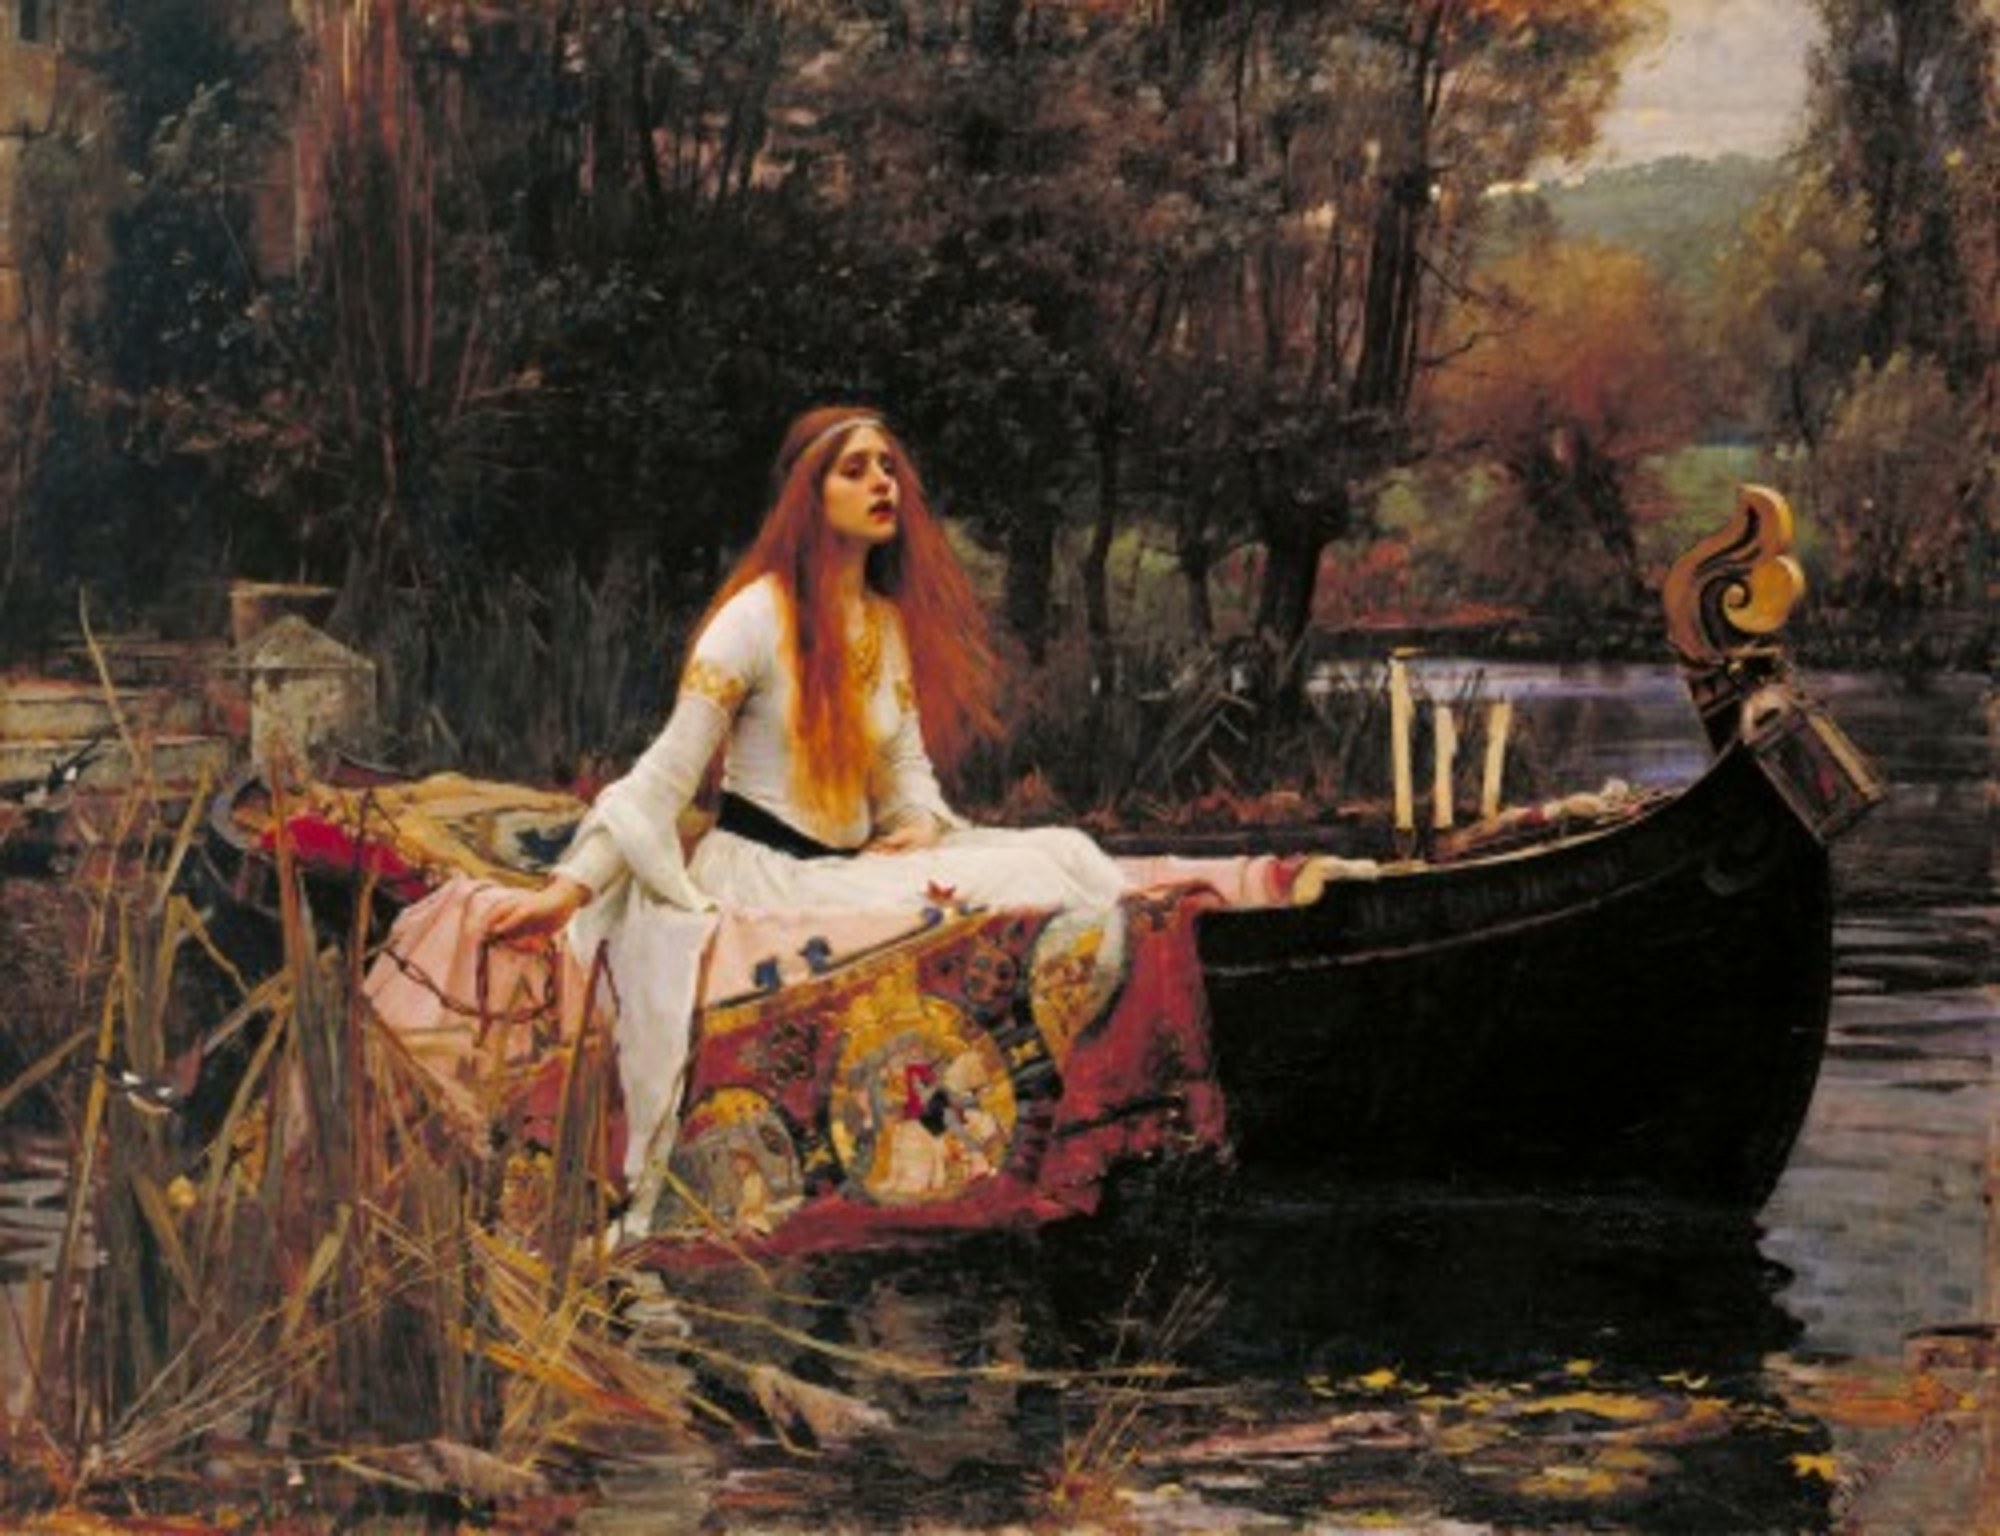 John_William_Waterhouse_-_The_Lady_of_Shalott_-_Google_Art_Project_edit.jpg